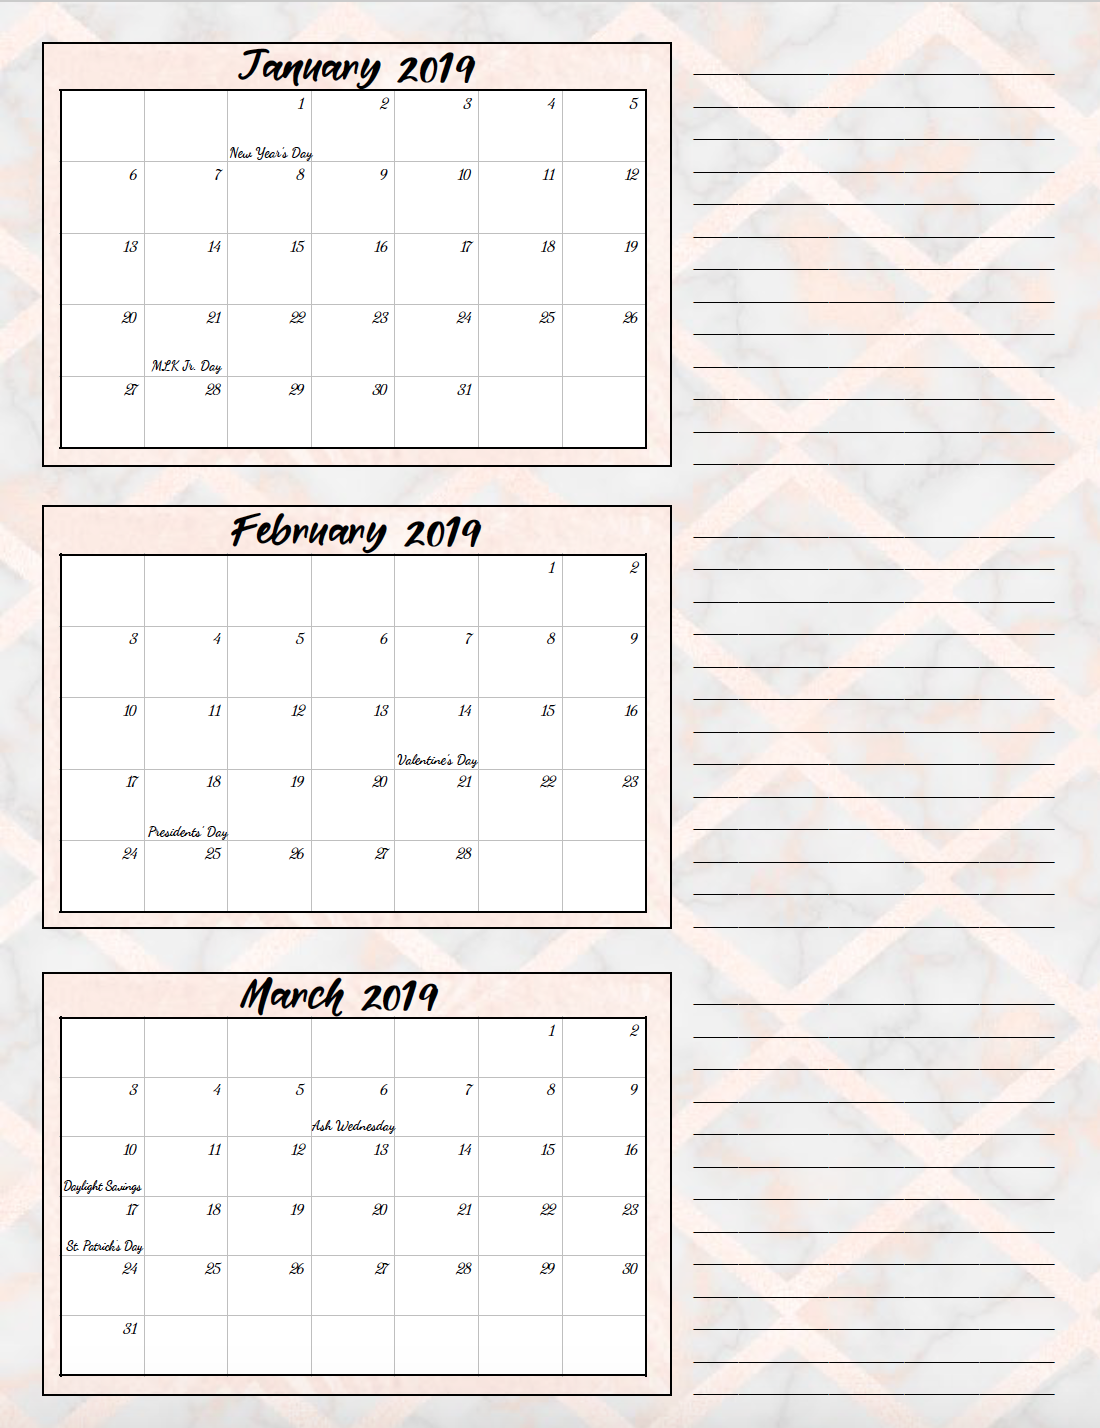 Jan-March 2019. Free Printable 2019 Quarterly Calendars with Holidays: 3 Designs. Holiday theme, bright and floral theme, and classic elegant theme- choose which works for you! #free #printable #freeprintable #calendars #2019calendars